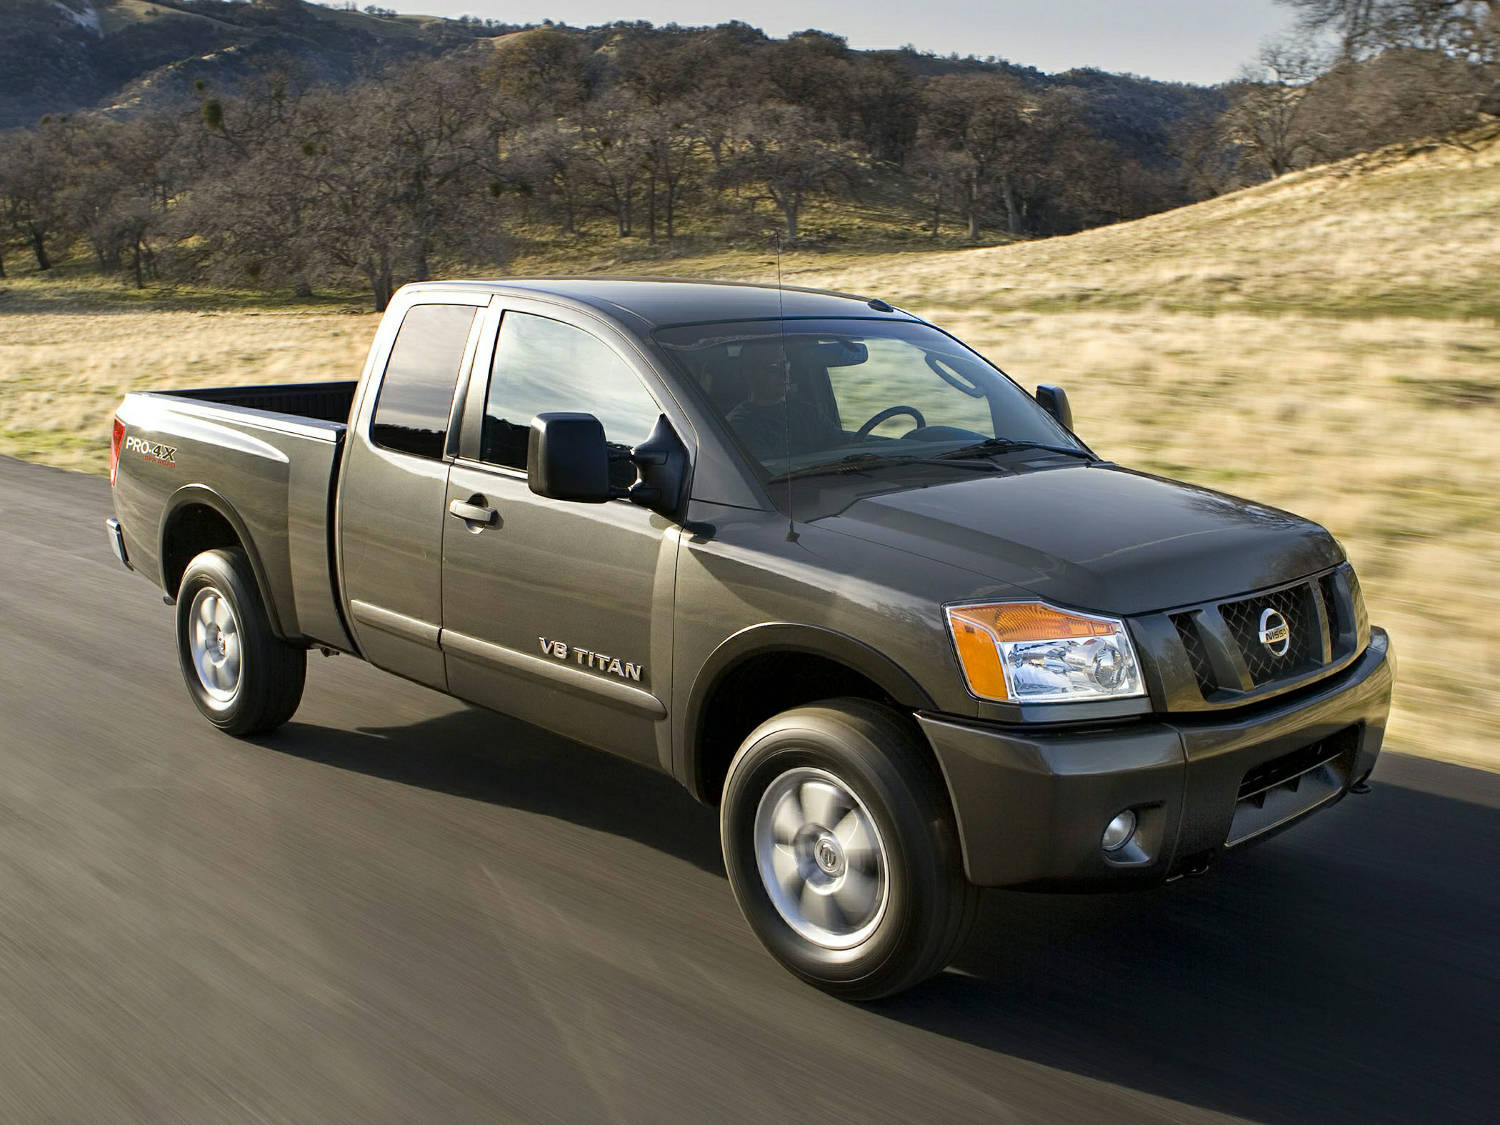 platinum titan vs nissan armada comparison distance king sv cab